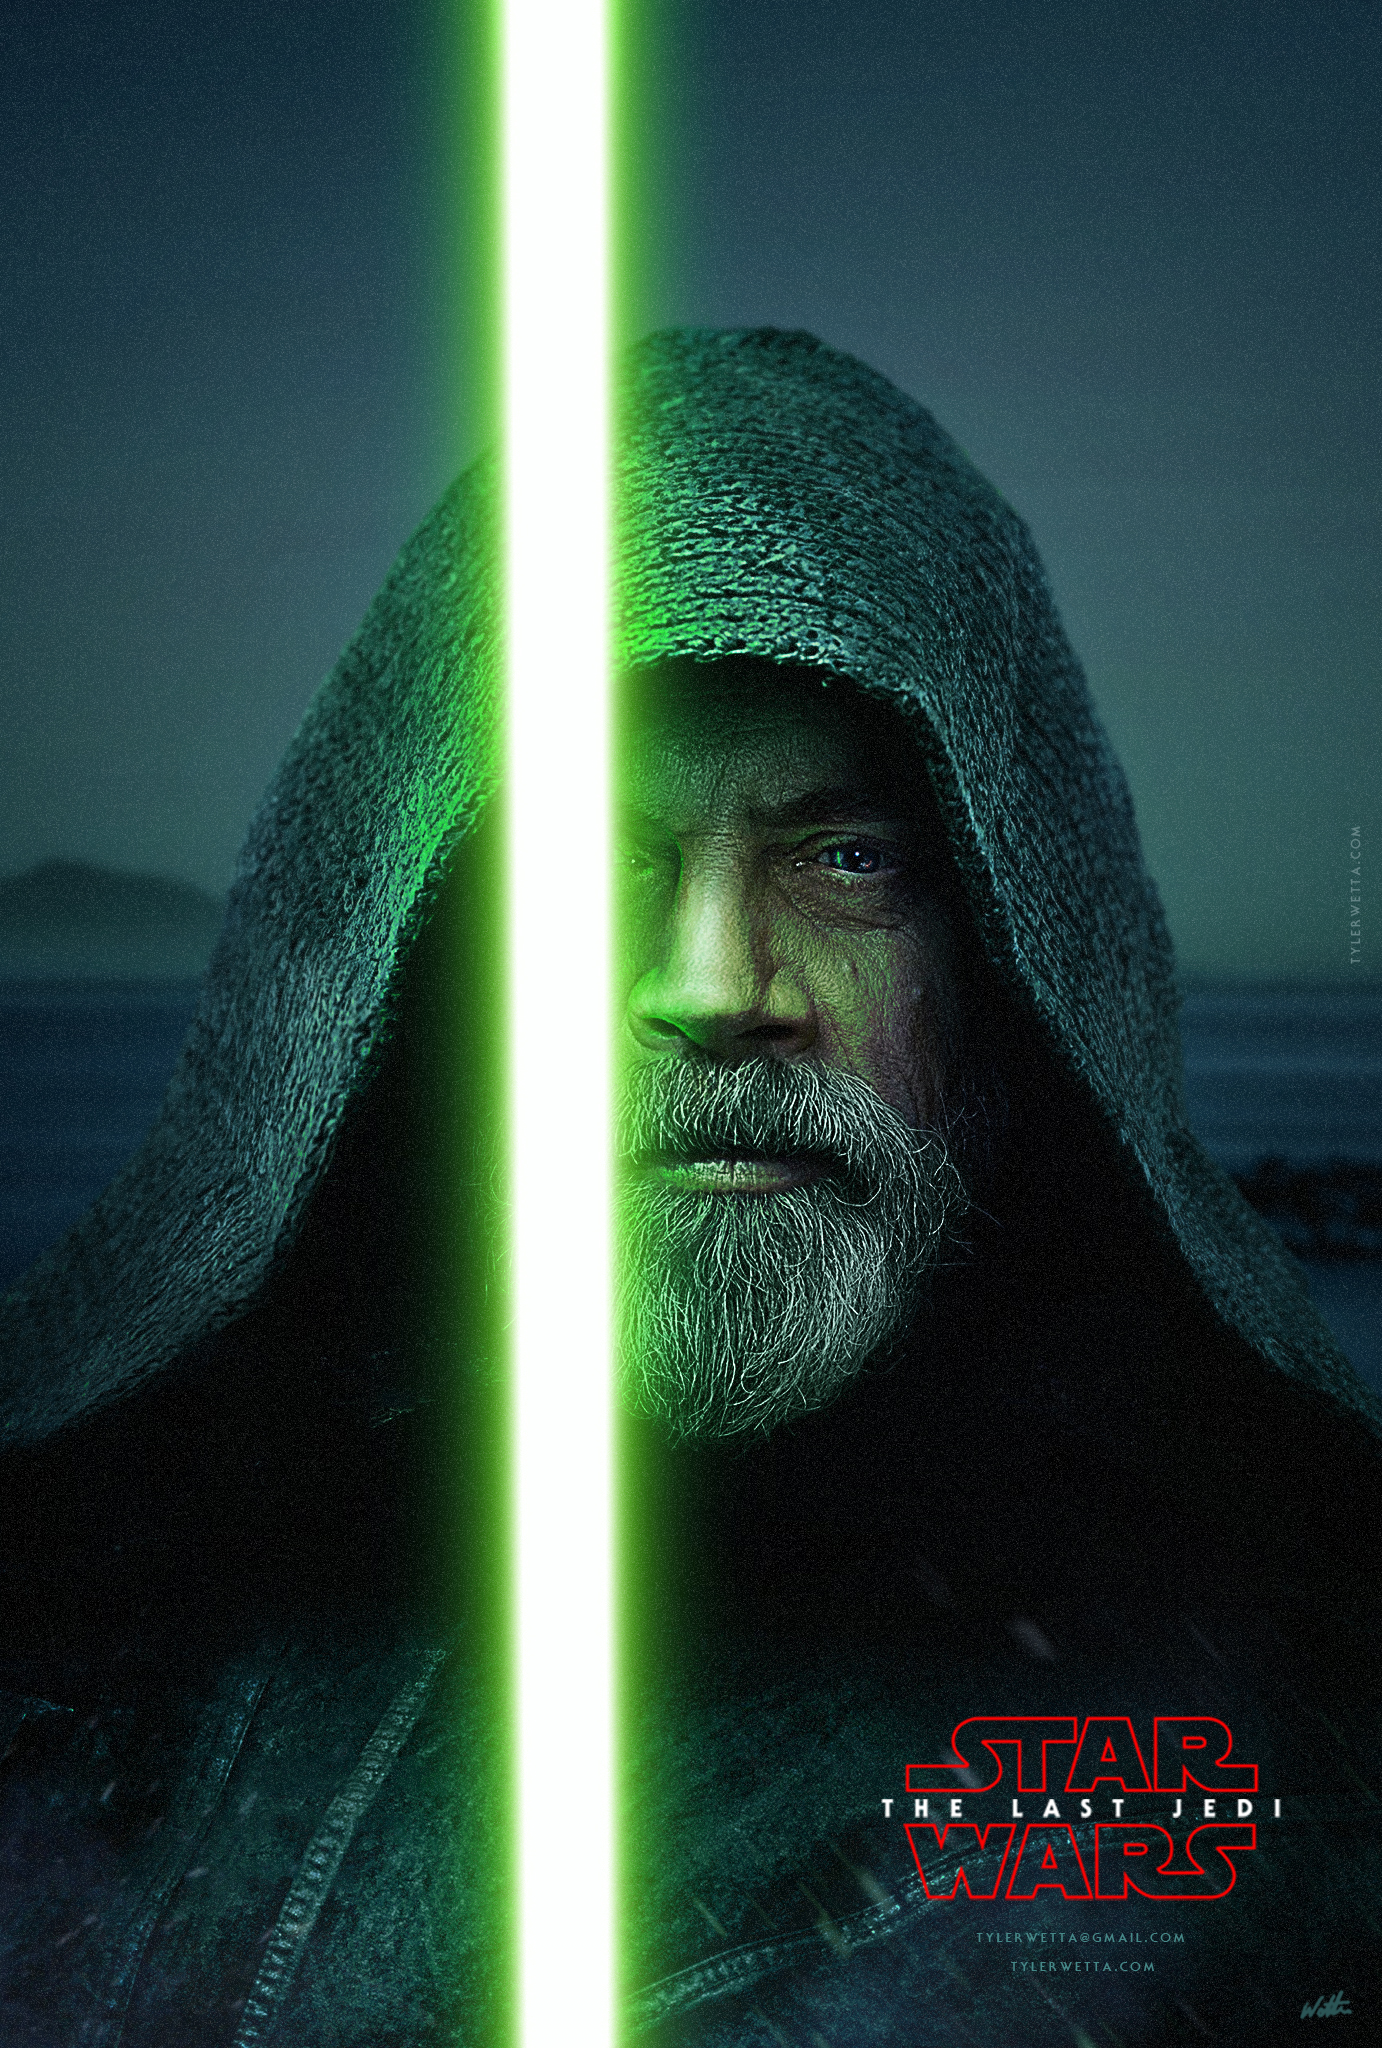 Starwars The Last Jedi Poster News Of New Car 2019 2020 Jeep Wrangler Factory Subwoofer Wiring Movie By Tyler Wetta